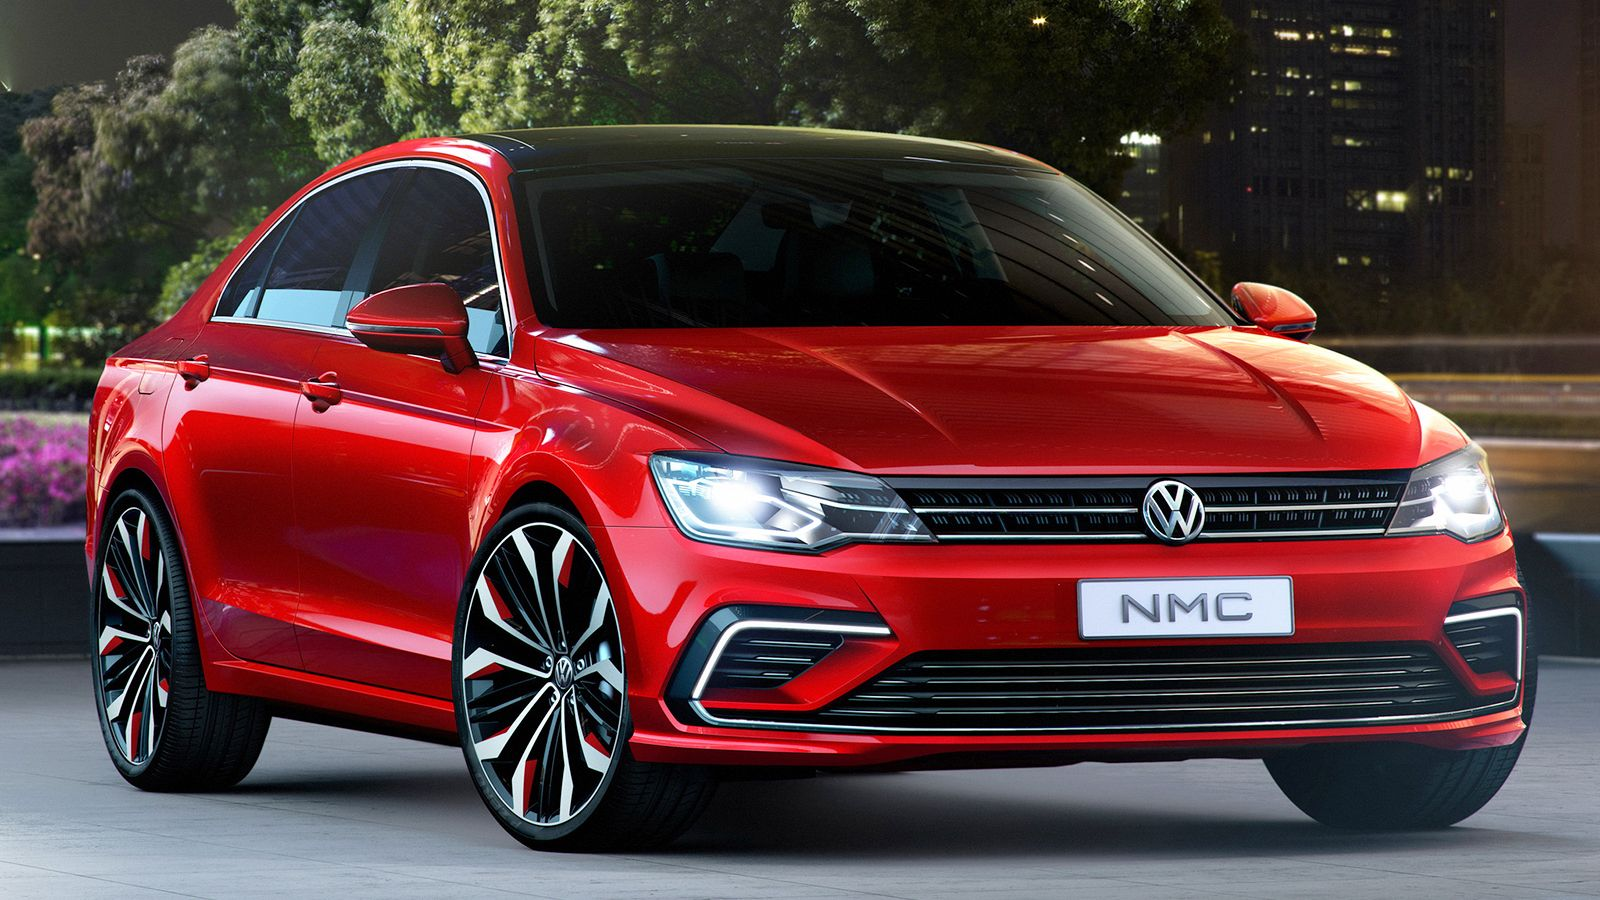 volkswagen_new_midsize_coupe_concept_2